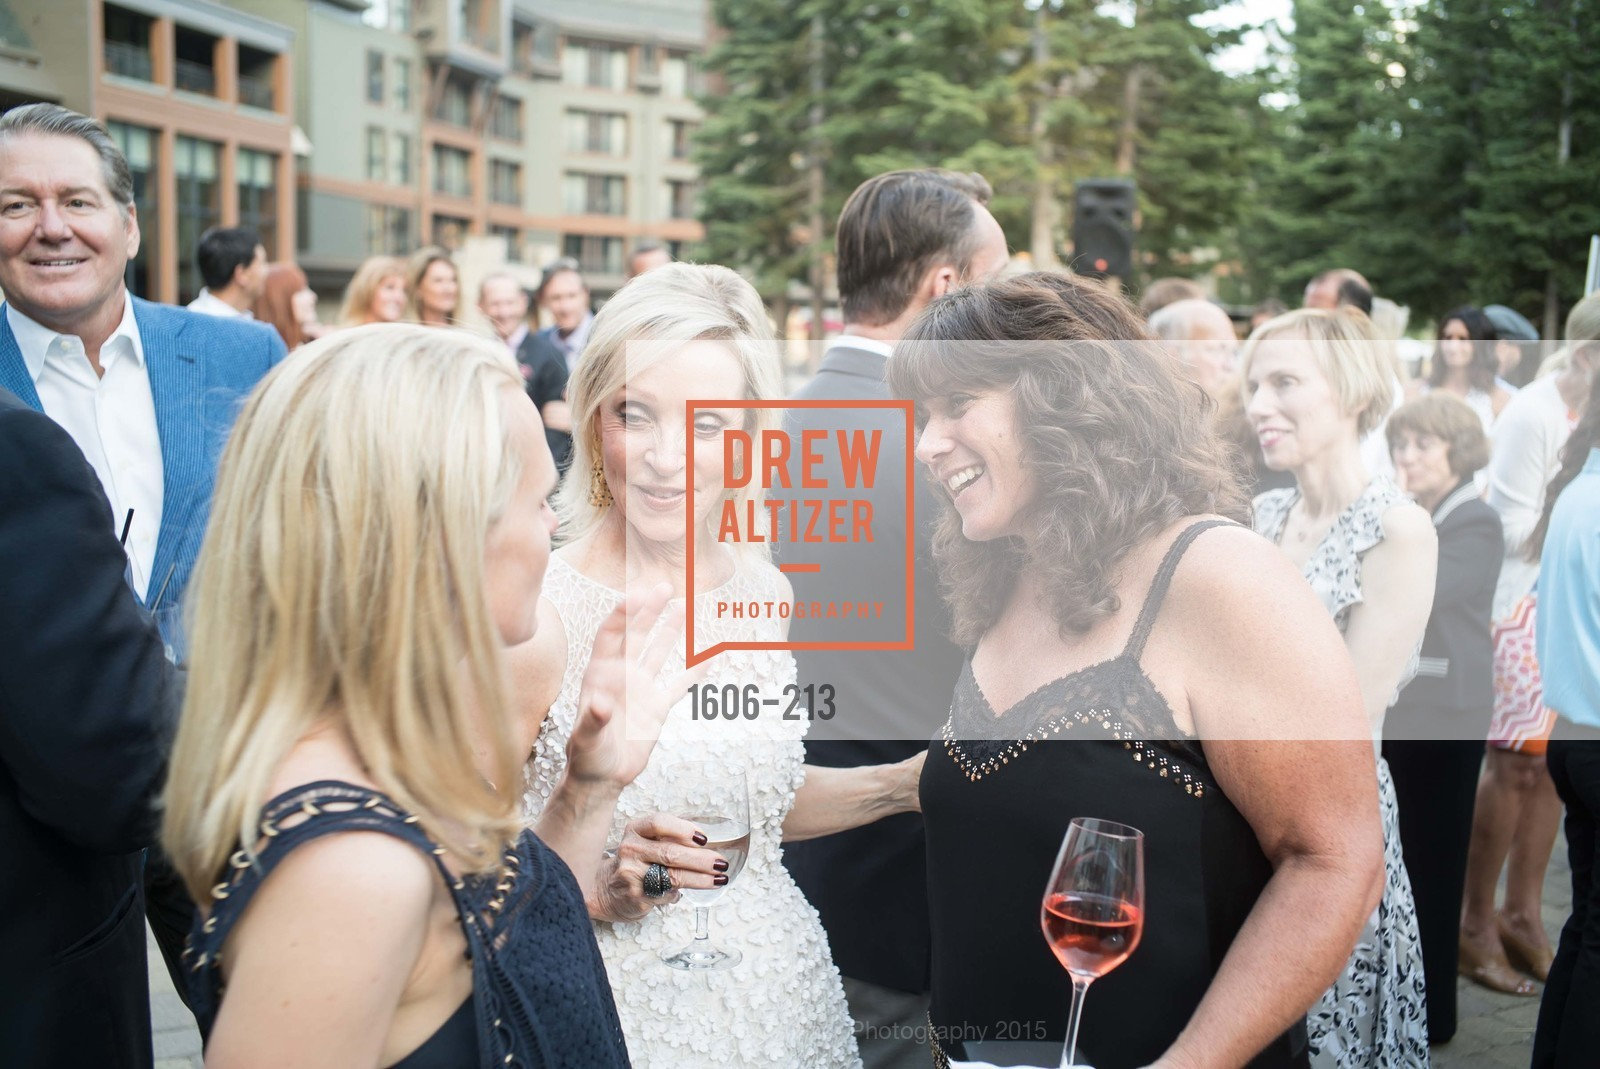 Barbara Brown, Kristen Keane, League to Save Lake Tahoe Sponsor Cocktail Party, Ritz-Carlton, Lake Tahoe, July 31st, 2015,Drew Altizer, Drew Altizer Photography, full-service event agency, private events, San Francisco photographer, photographer California